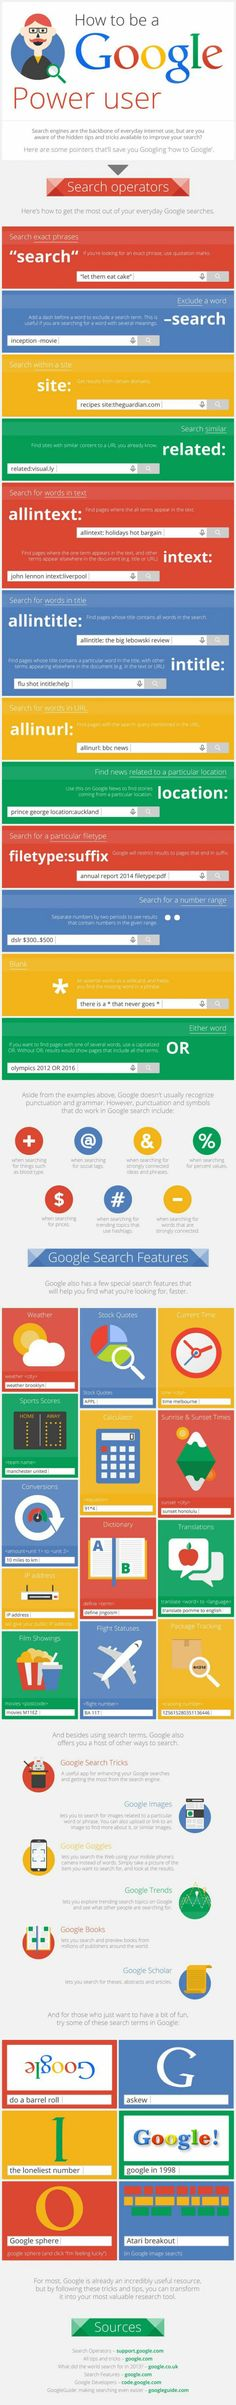 How to use Google? You are welcome.